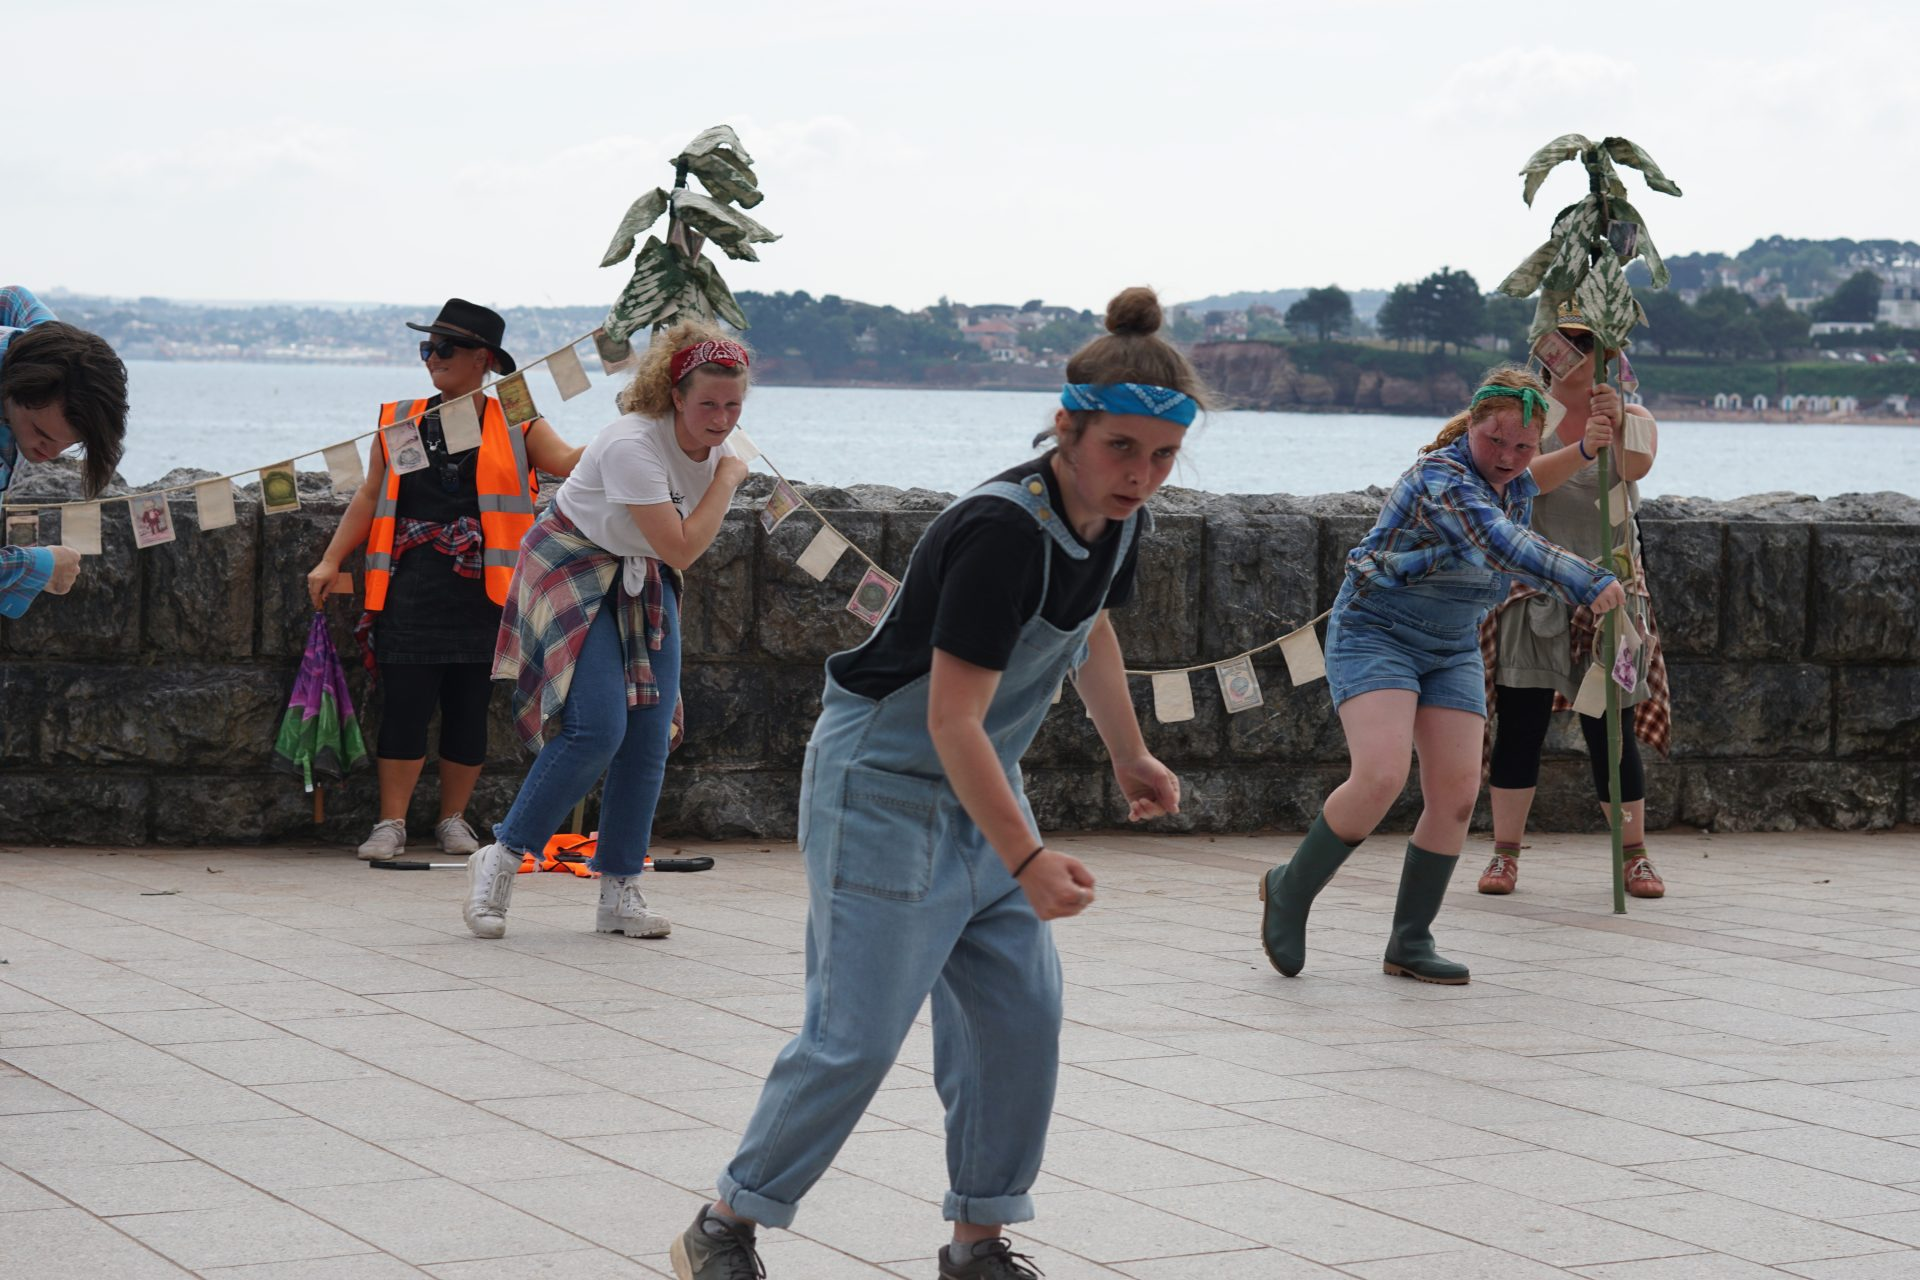 Young people at Doorstep Arts performing in a performance protest in Torbay, femmes wear dungarees and hold cabbage inspired protest banners